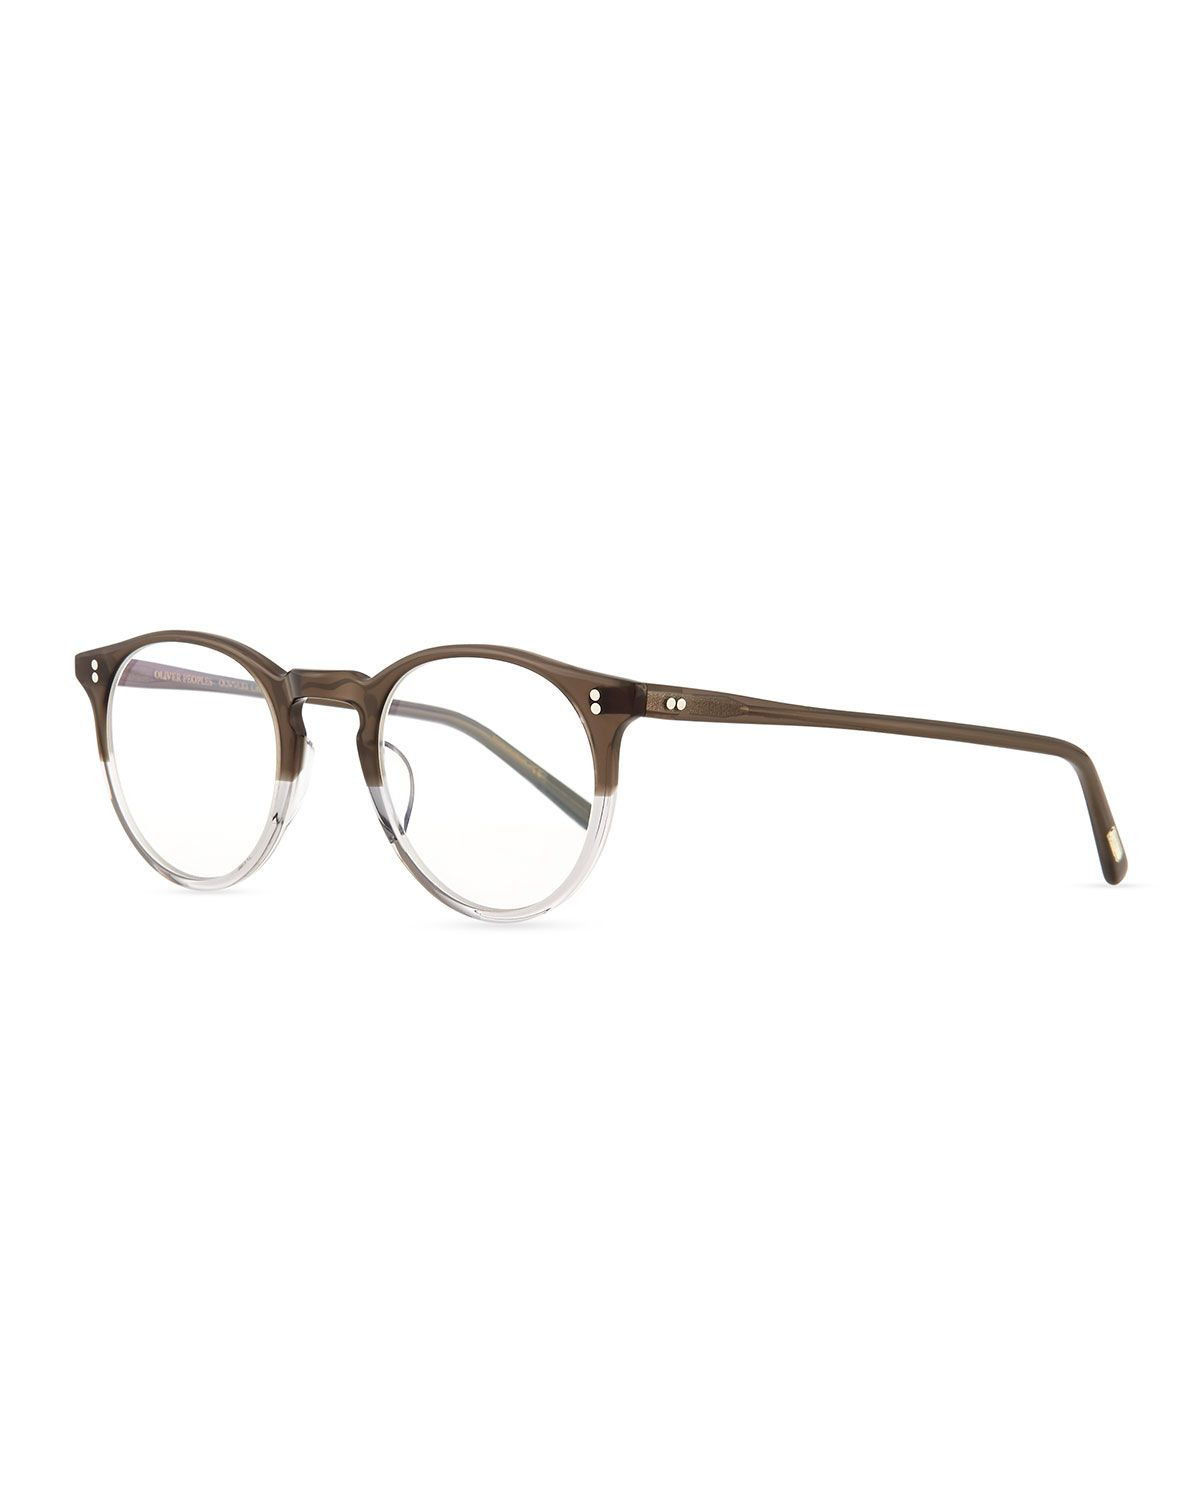 7ce8bfdf414 Oliver Peoples O Malley Round Fashion Glasses